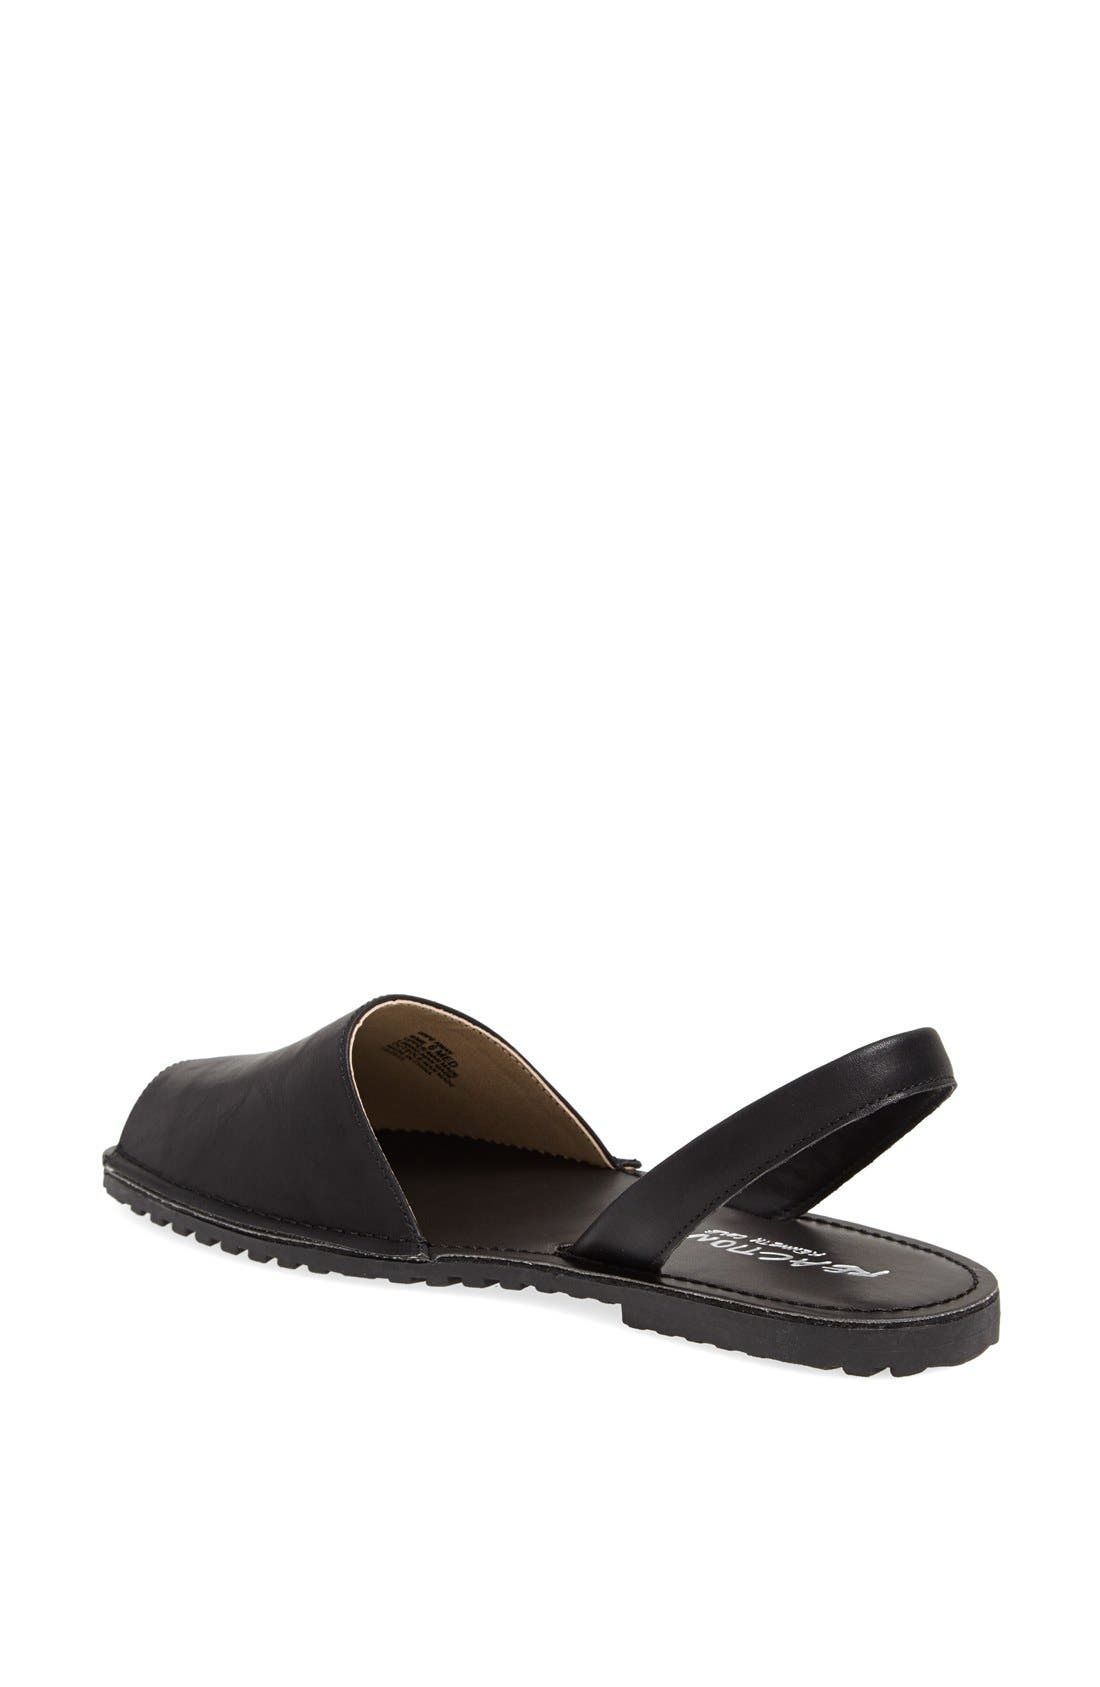 Alternate Image 2  - Kenneth Cole Reaction 'Wipe Away' Slingback Sandal